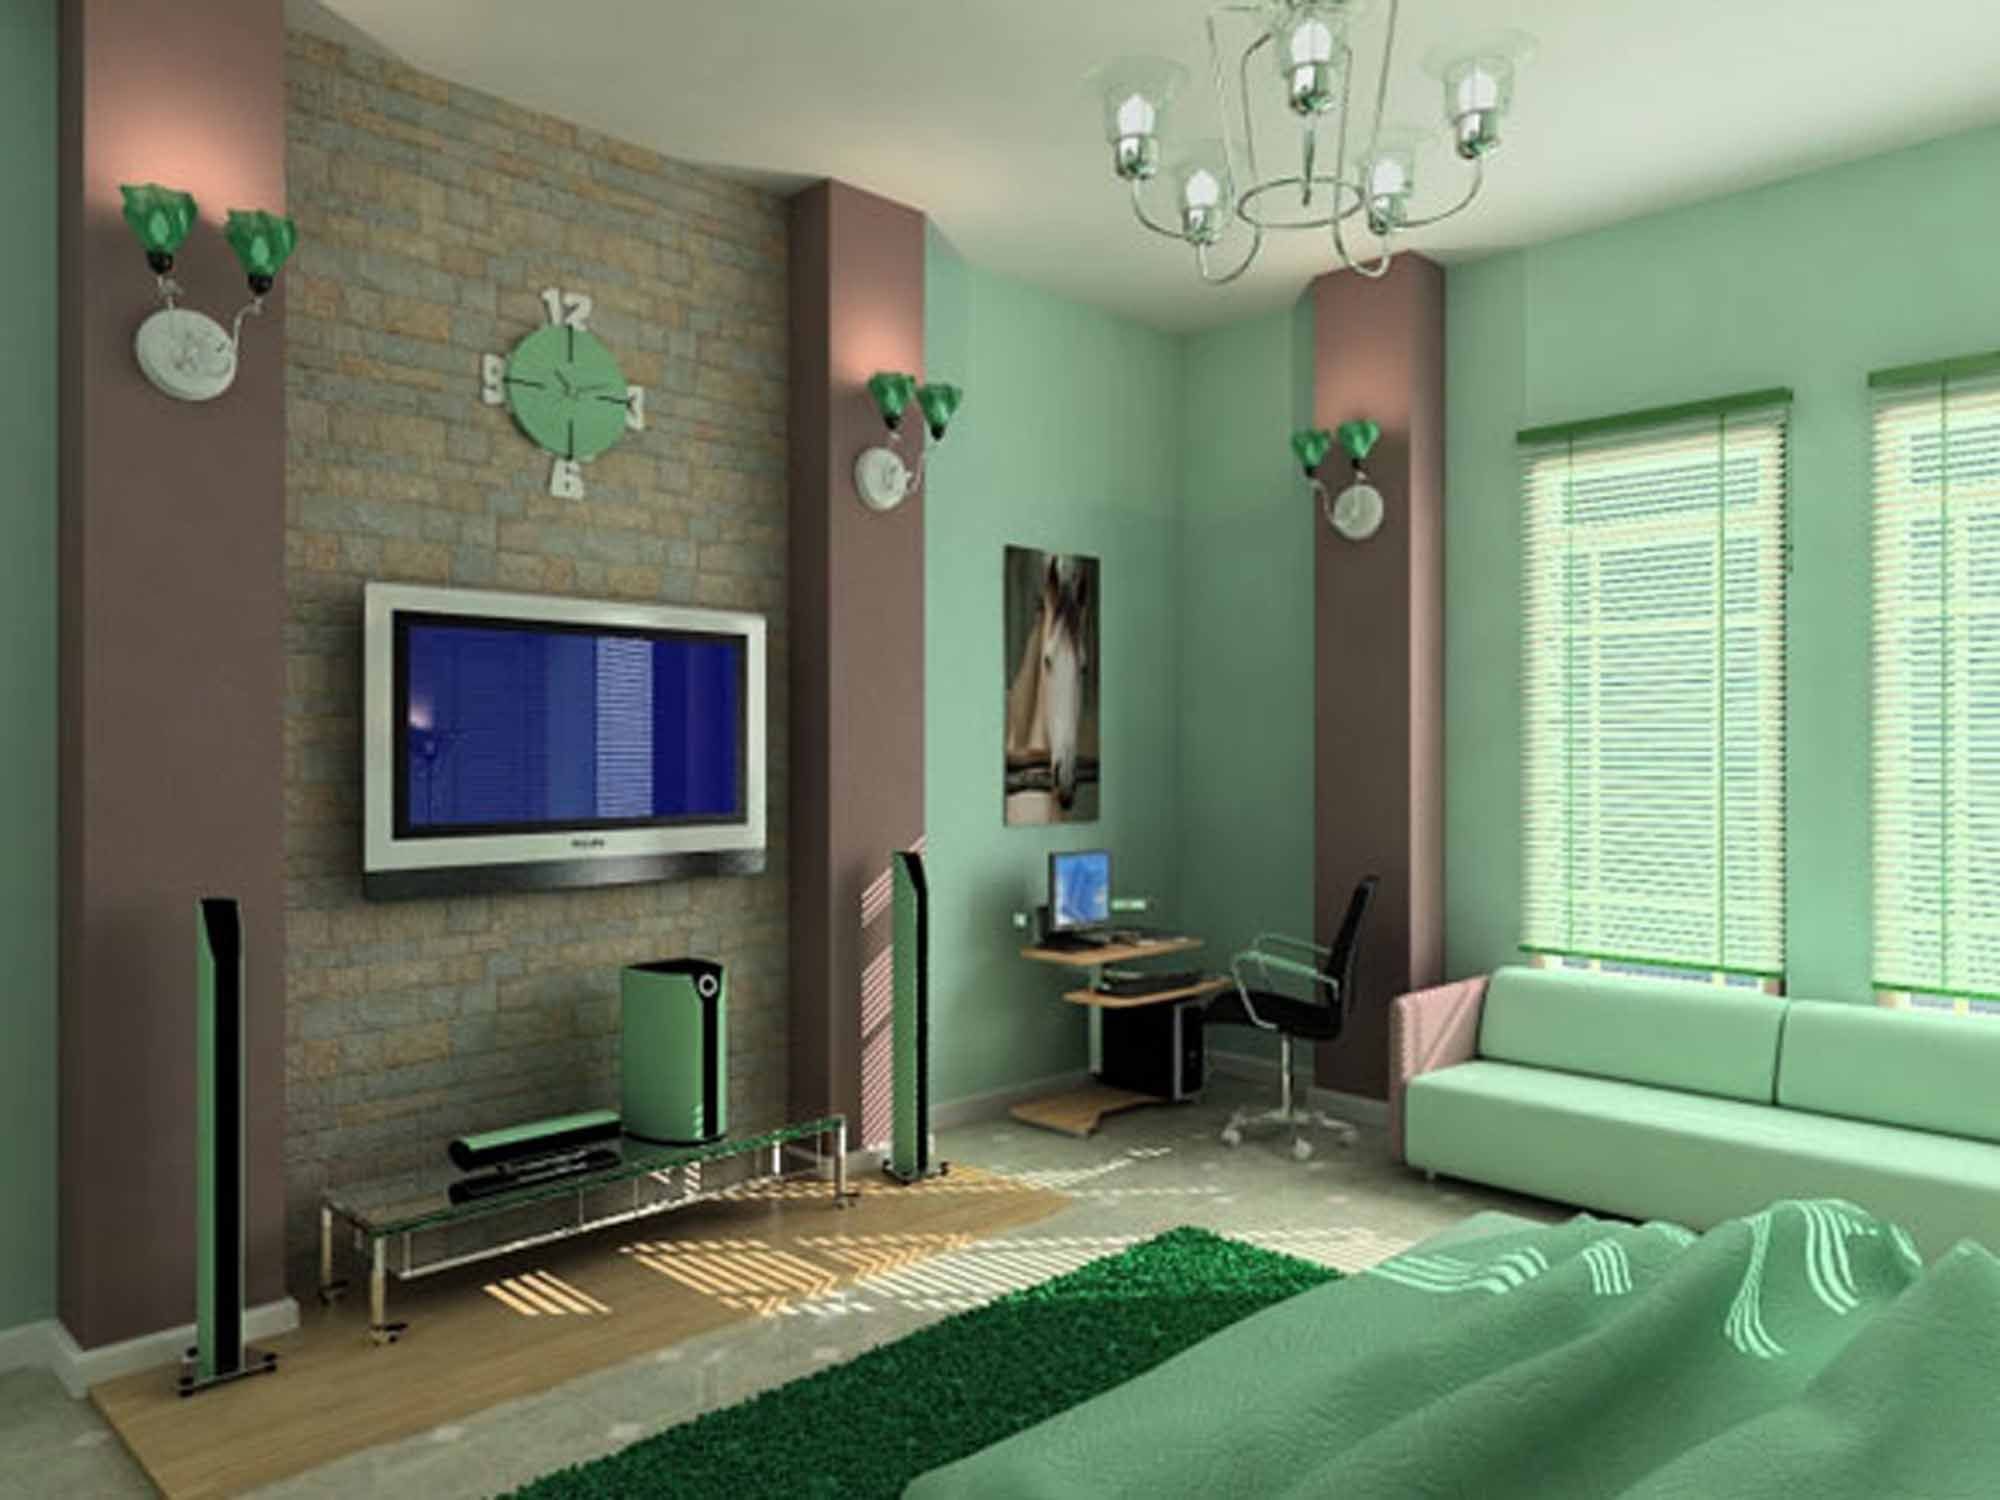 Bedroom Design Ideas Green Walls green bedroom interior design green interior design green interior